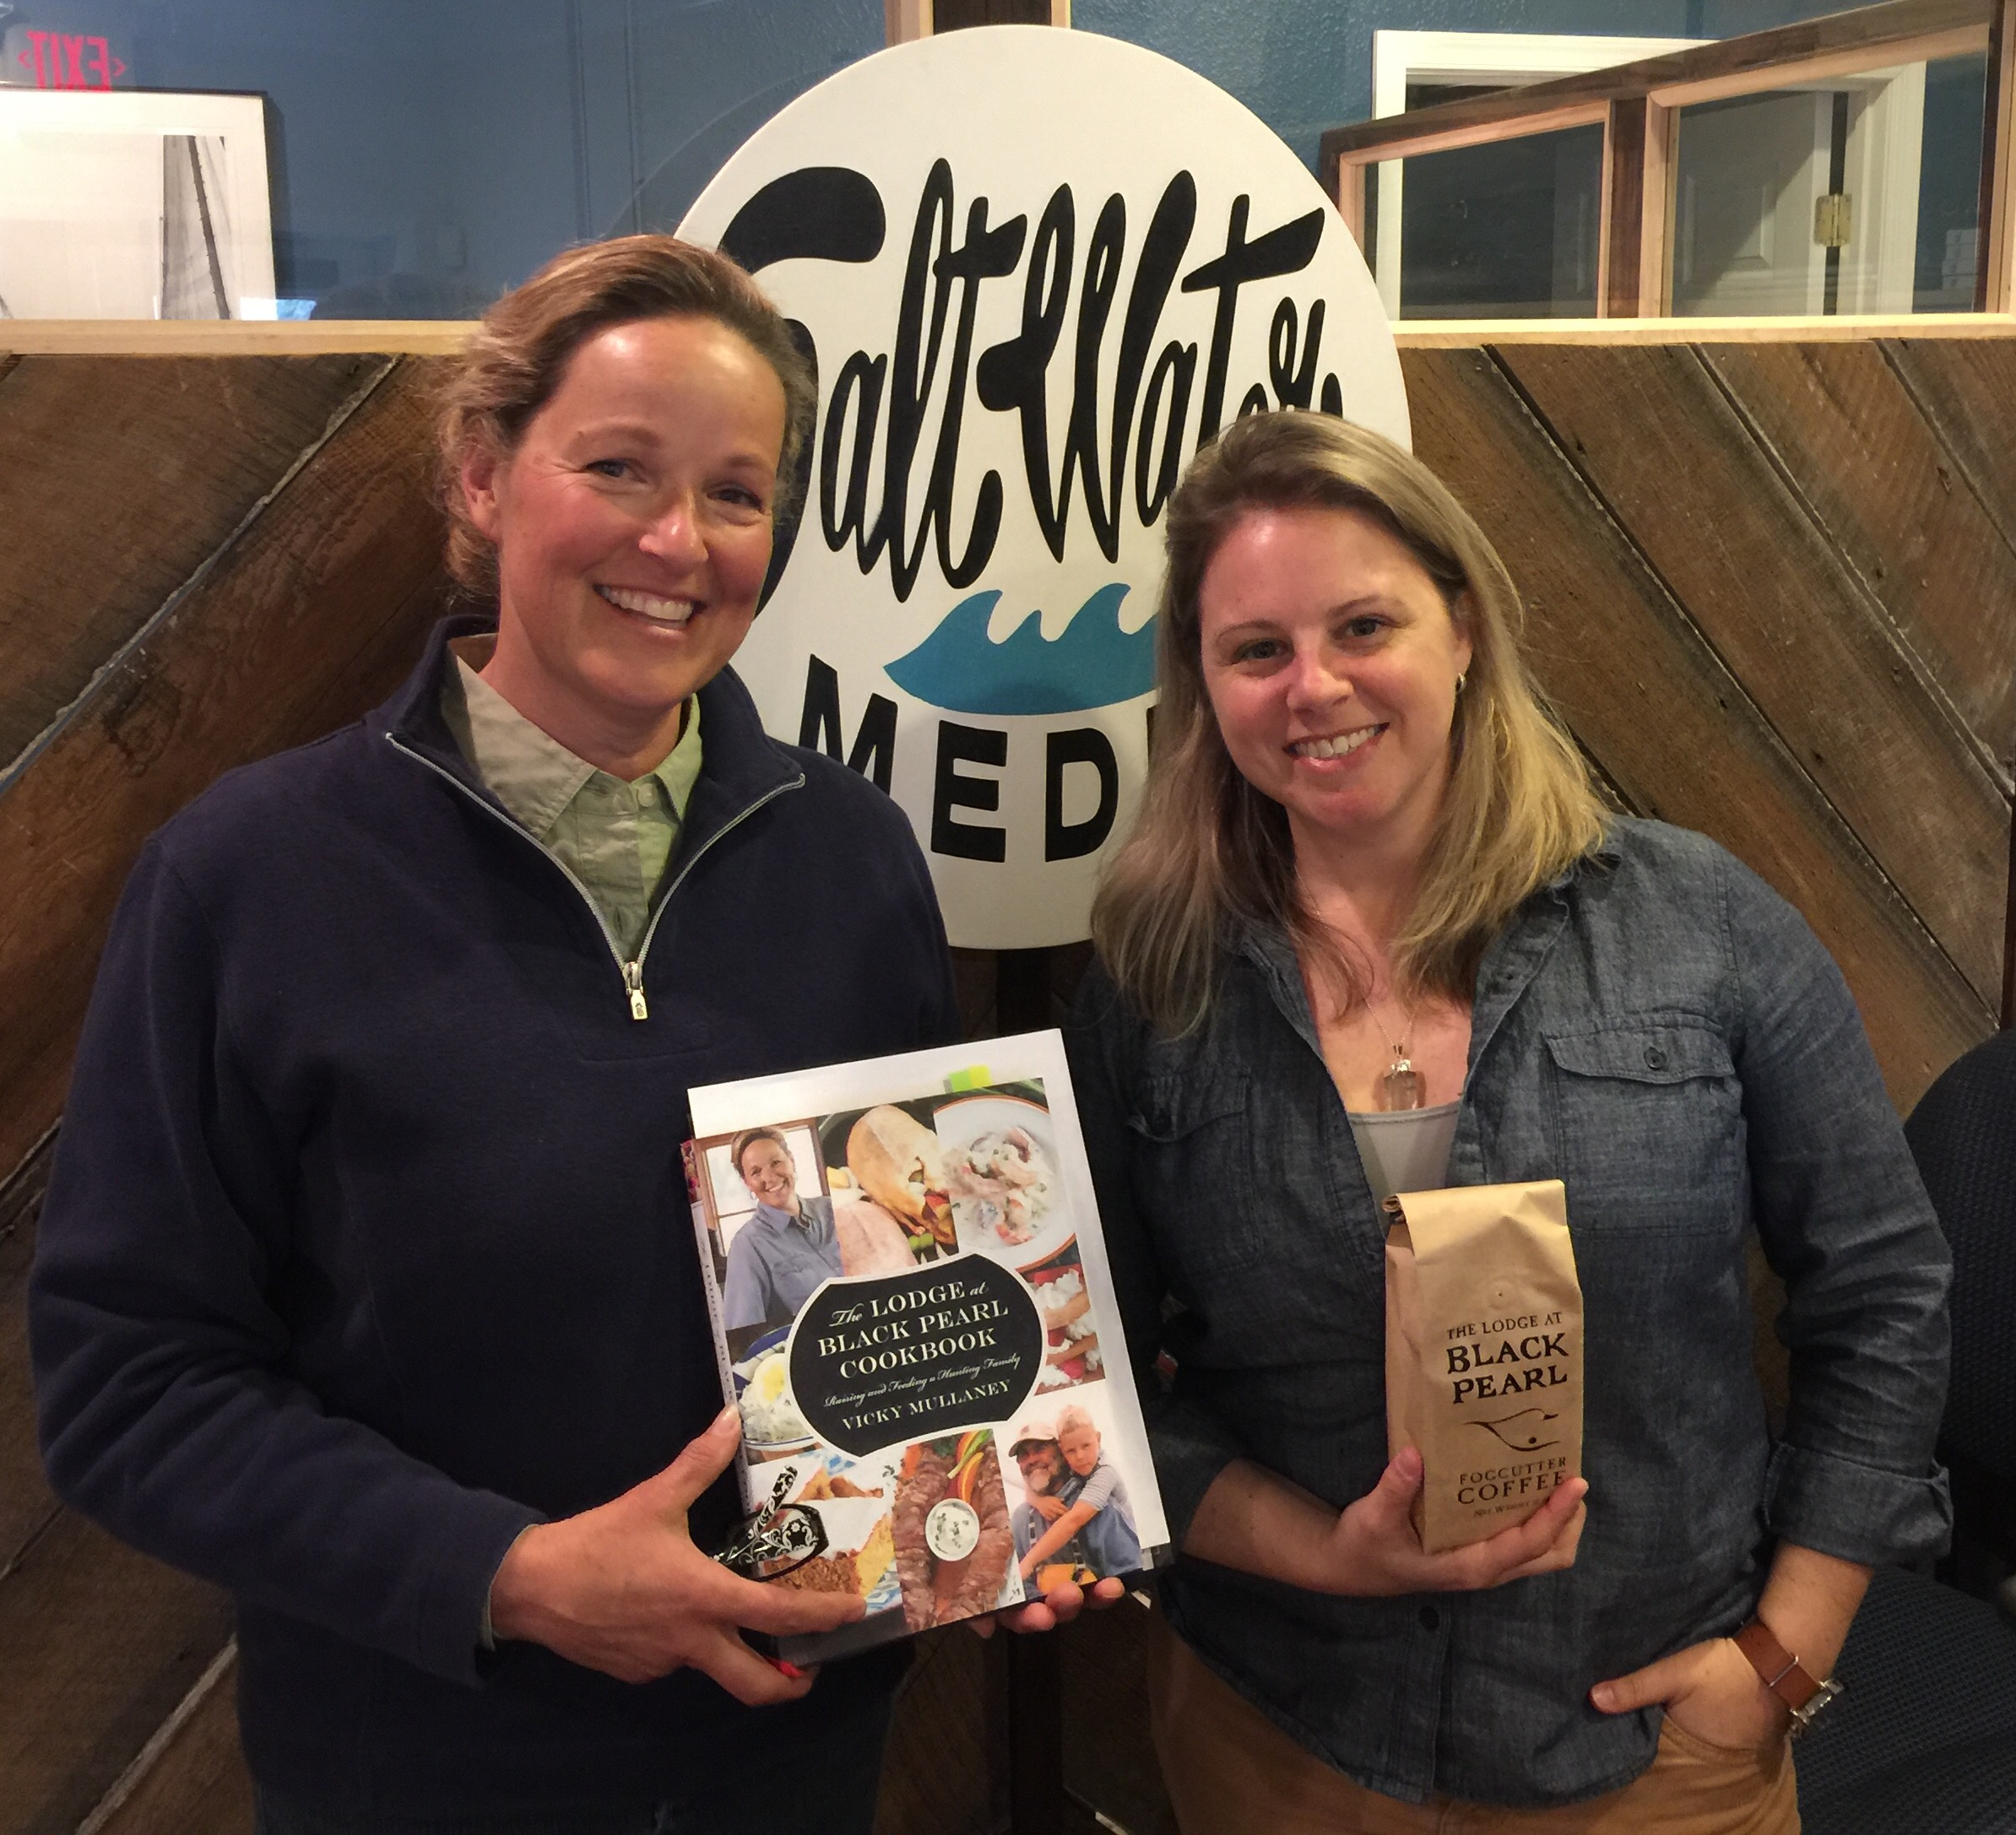 Vicky Mullaney shows off her newest creation, The Lodge at Black Pearl Cookbook, and her coffee blend, which she gave to Stephanie.